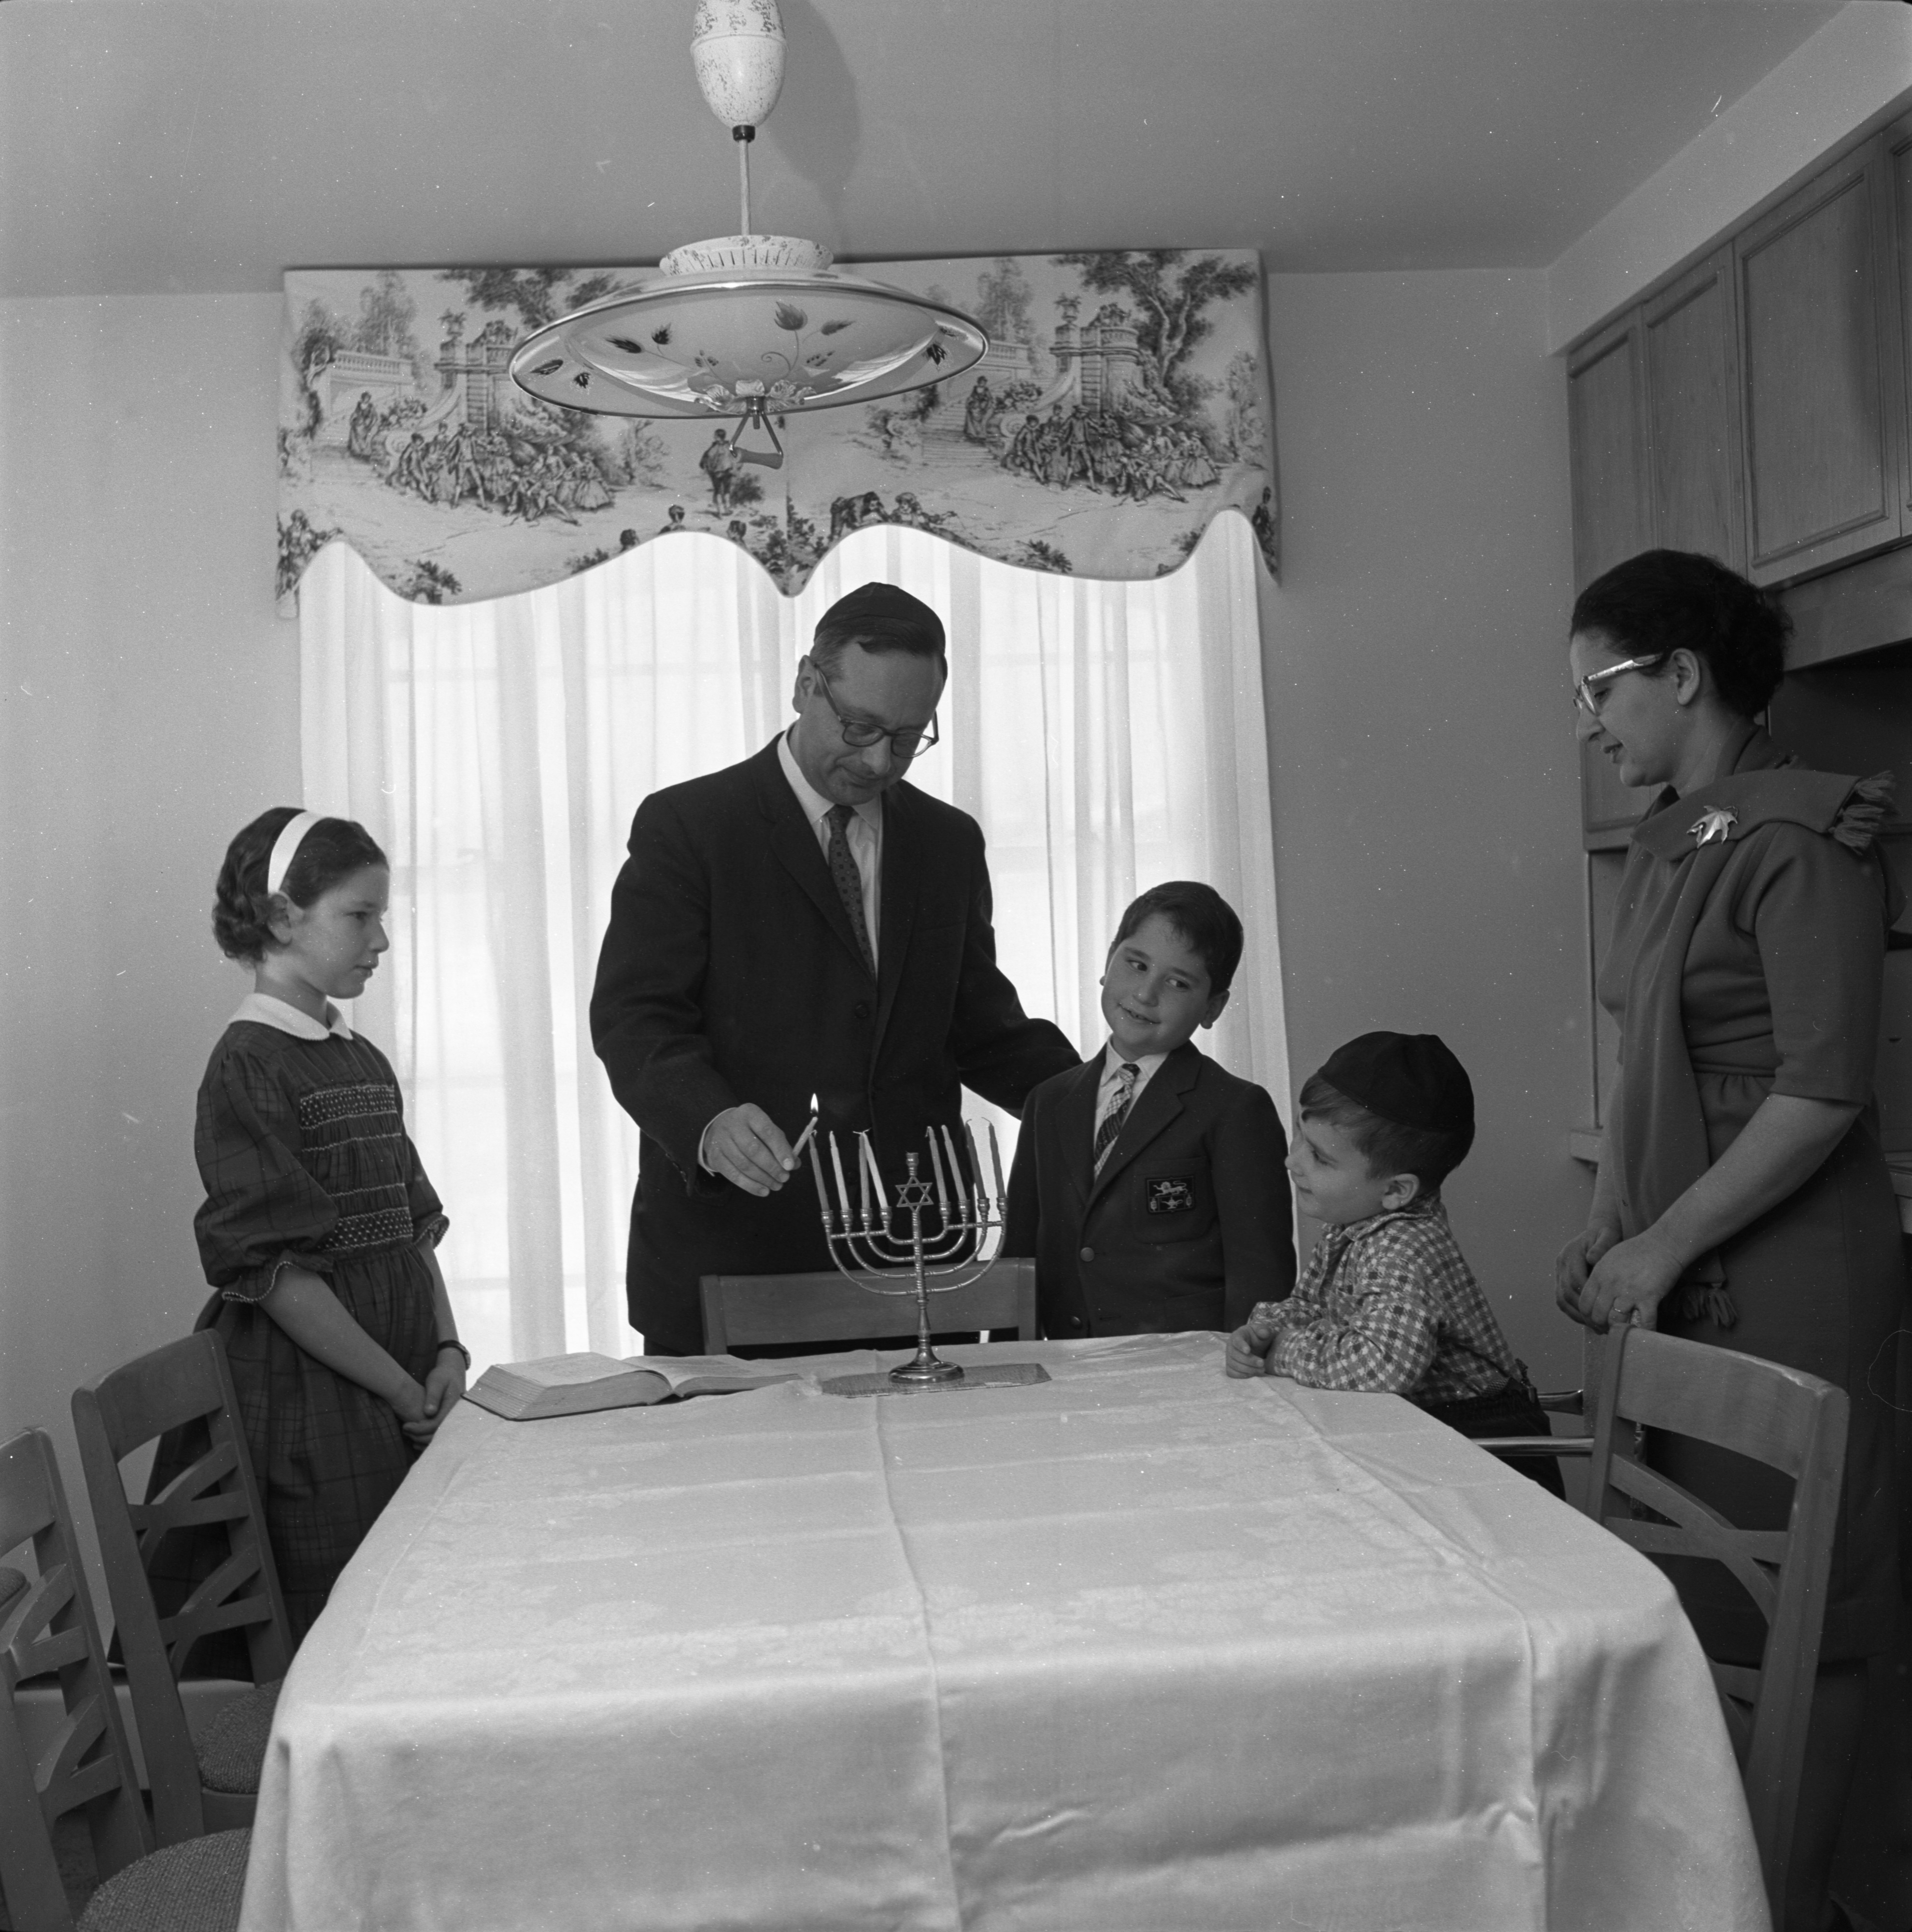 Pressell Family Celebrates The Beginning Of Hanukkah, December 1962 image